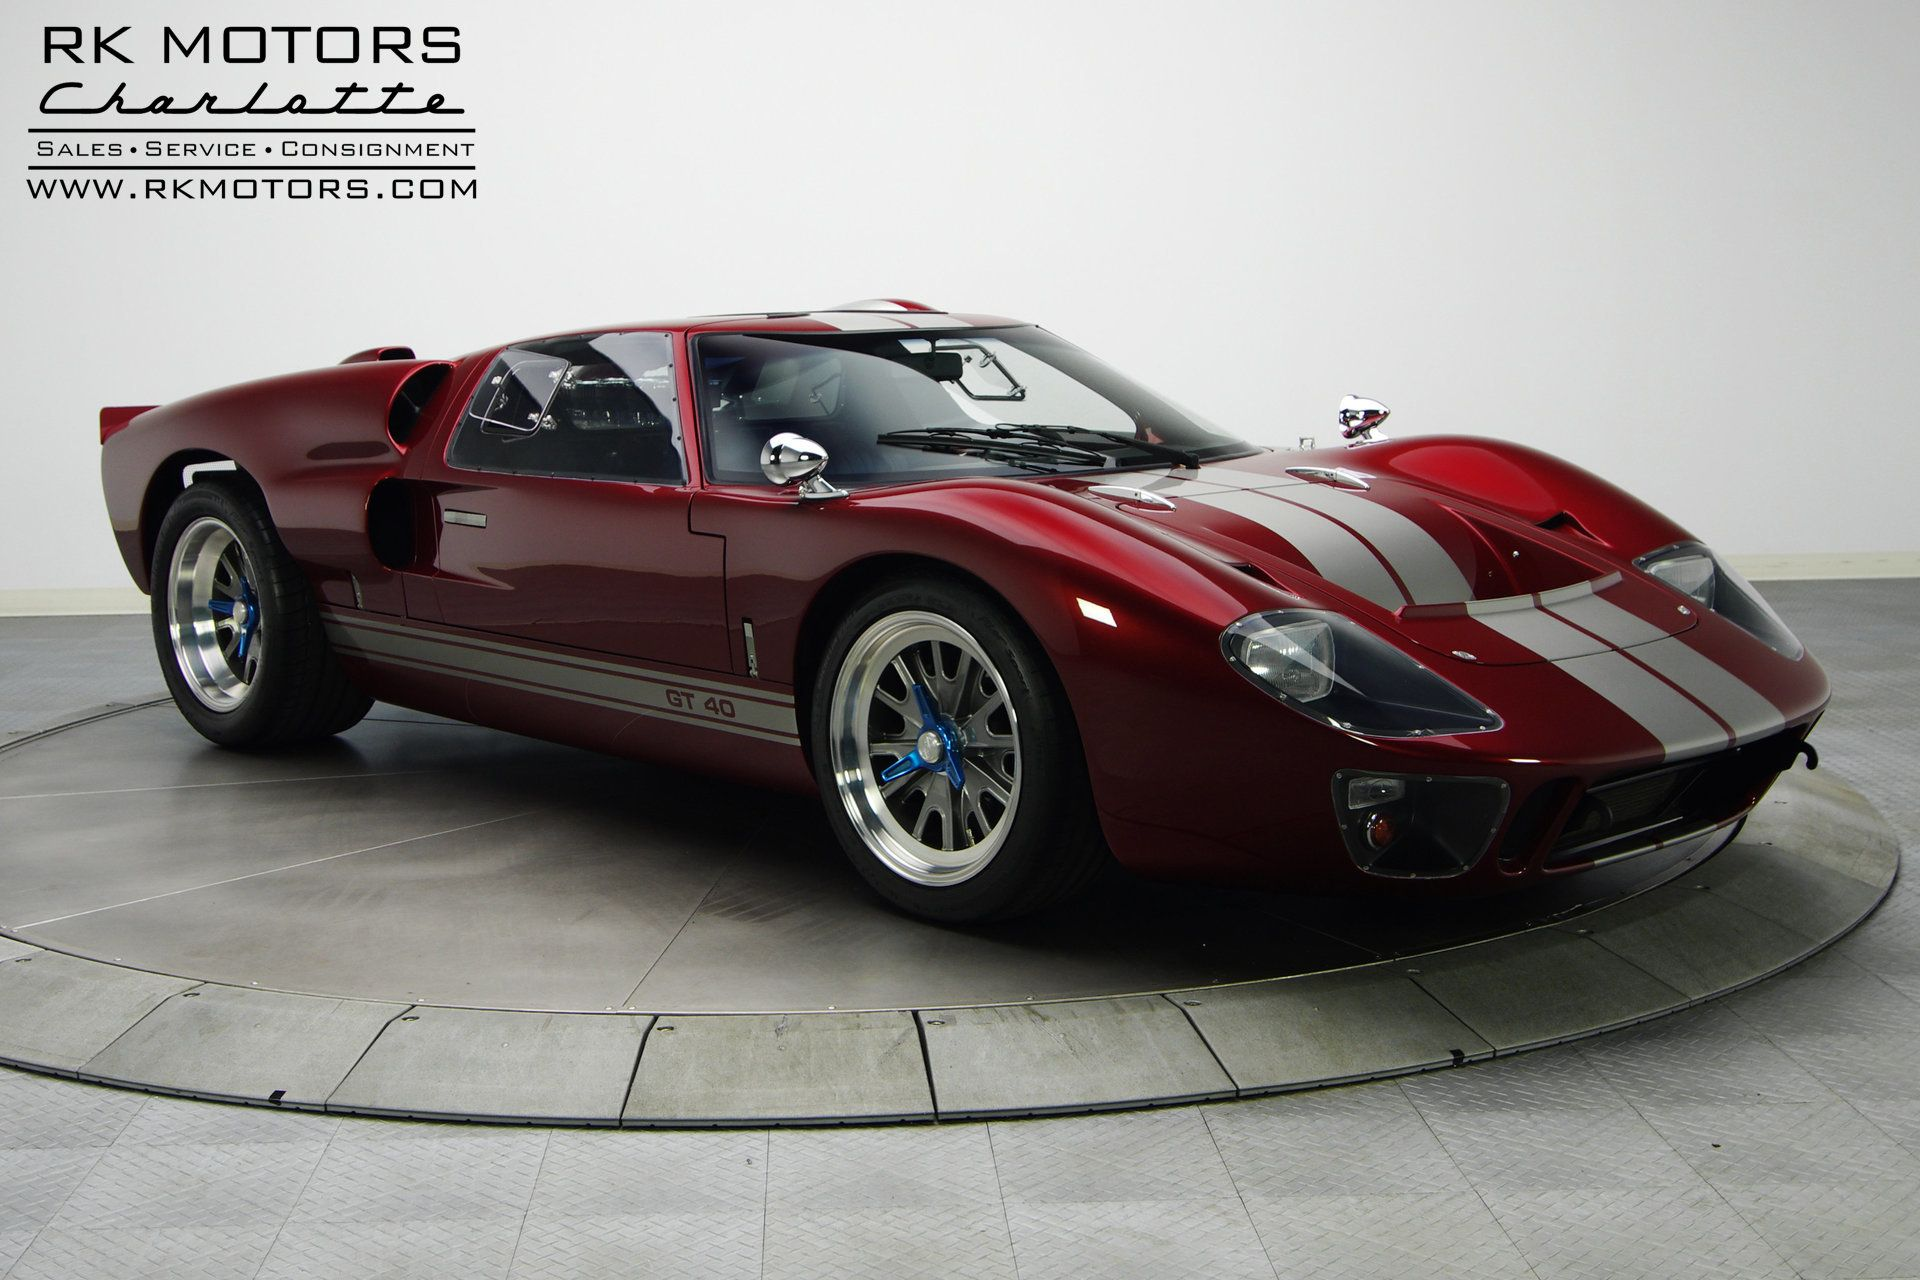 1966 Ford Gt40 Mk Ii Frame Up Built Gt40 Mk Ii P2211 Roush 427ir Efi 5 Speed Dream Cars Ford Gt Ford Gt40